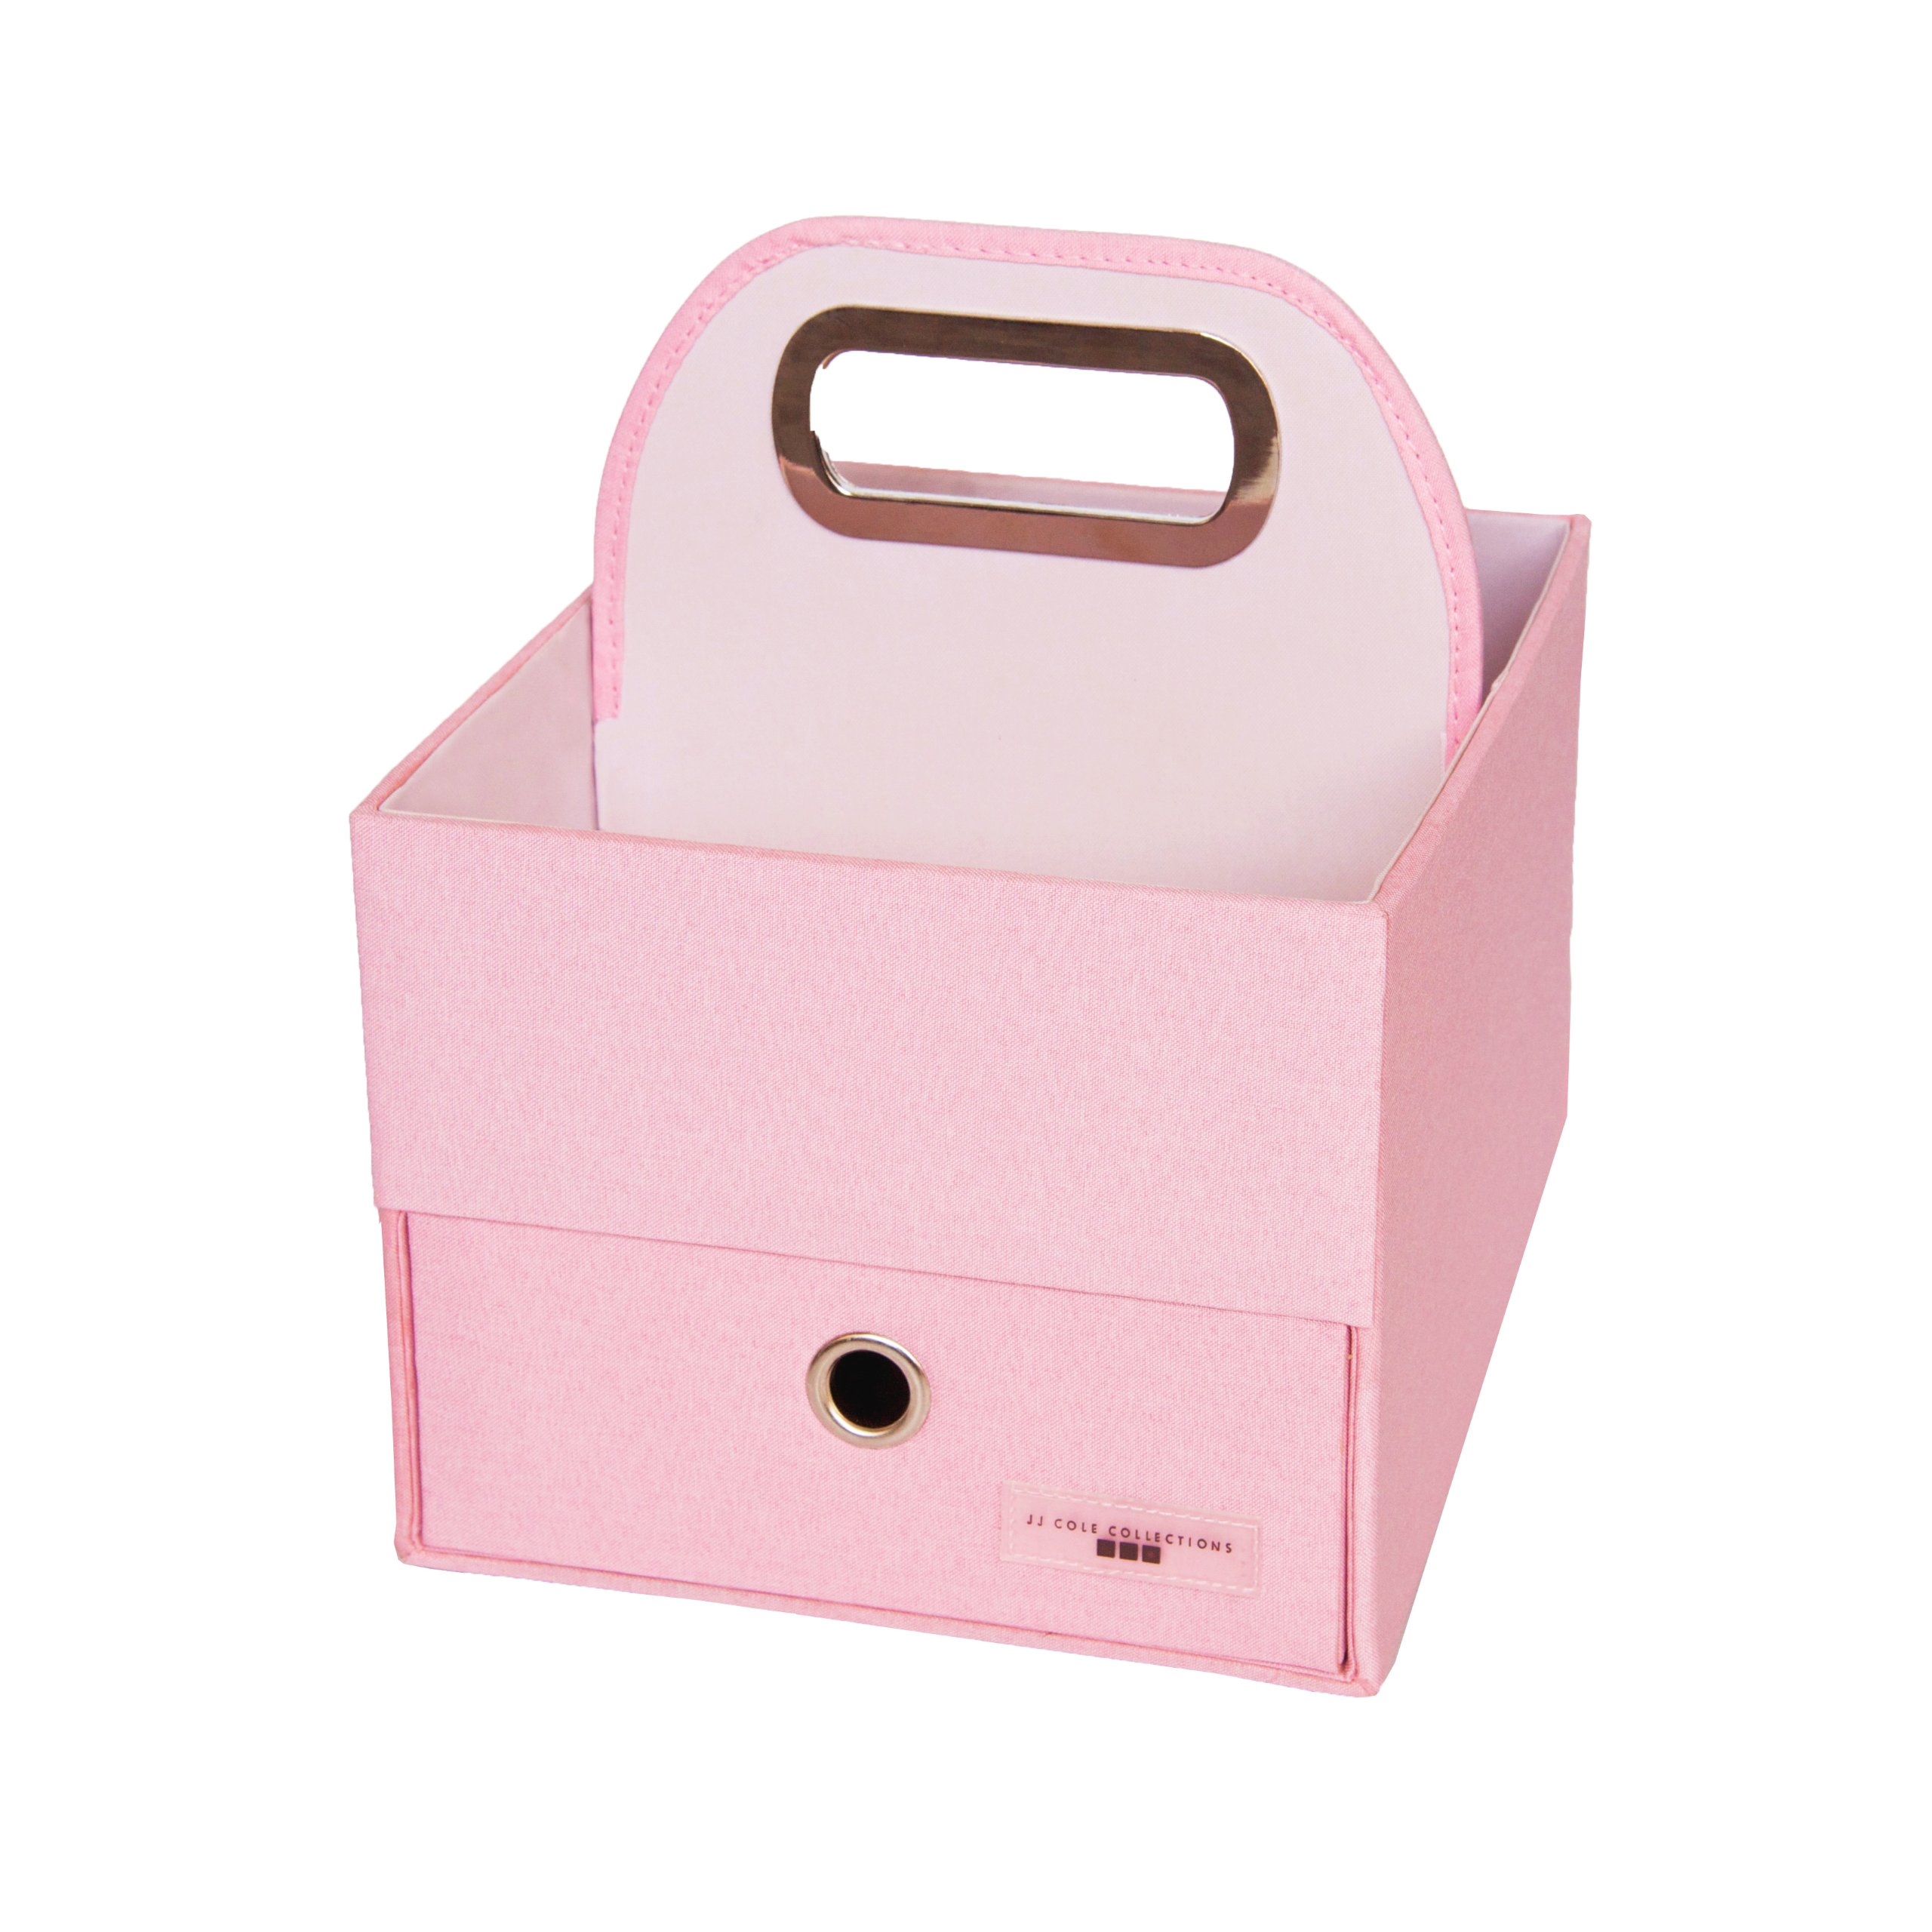 JJ Cole Heather Diaper and Wipes Caddy, Pink by JJ Cole